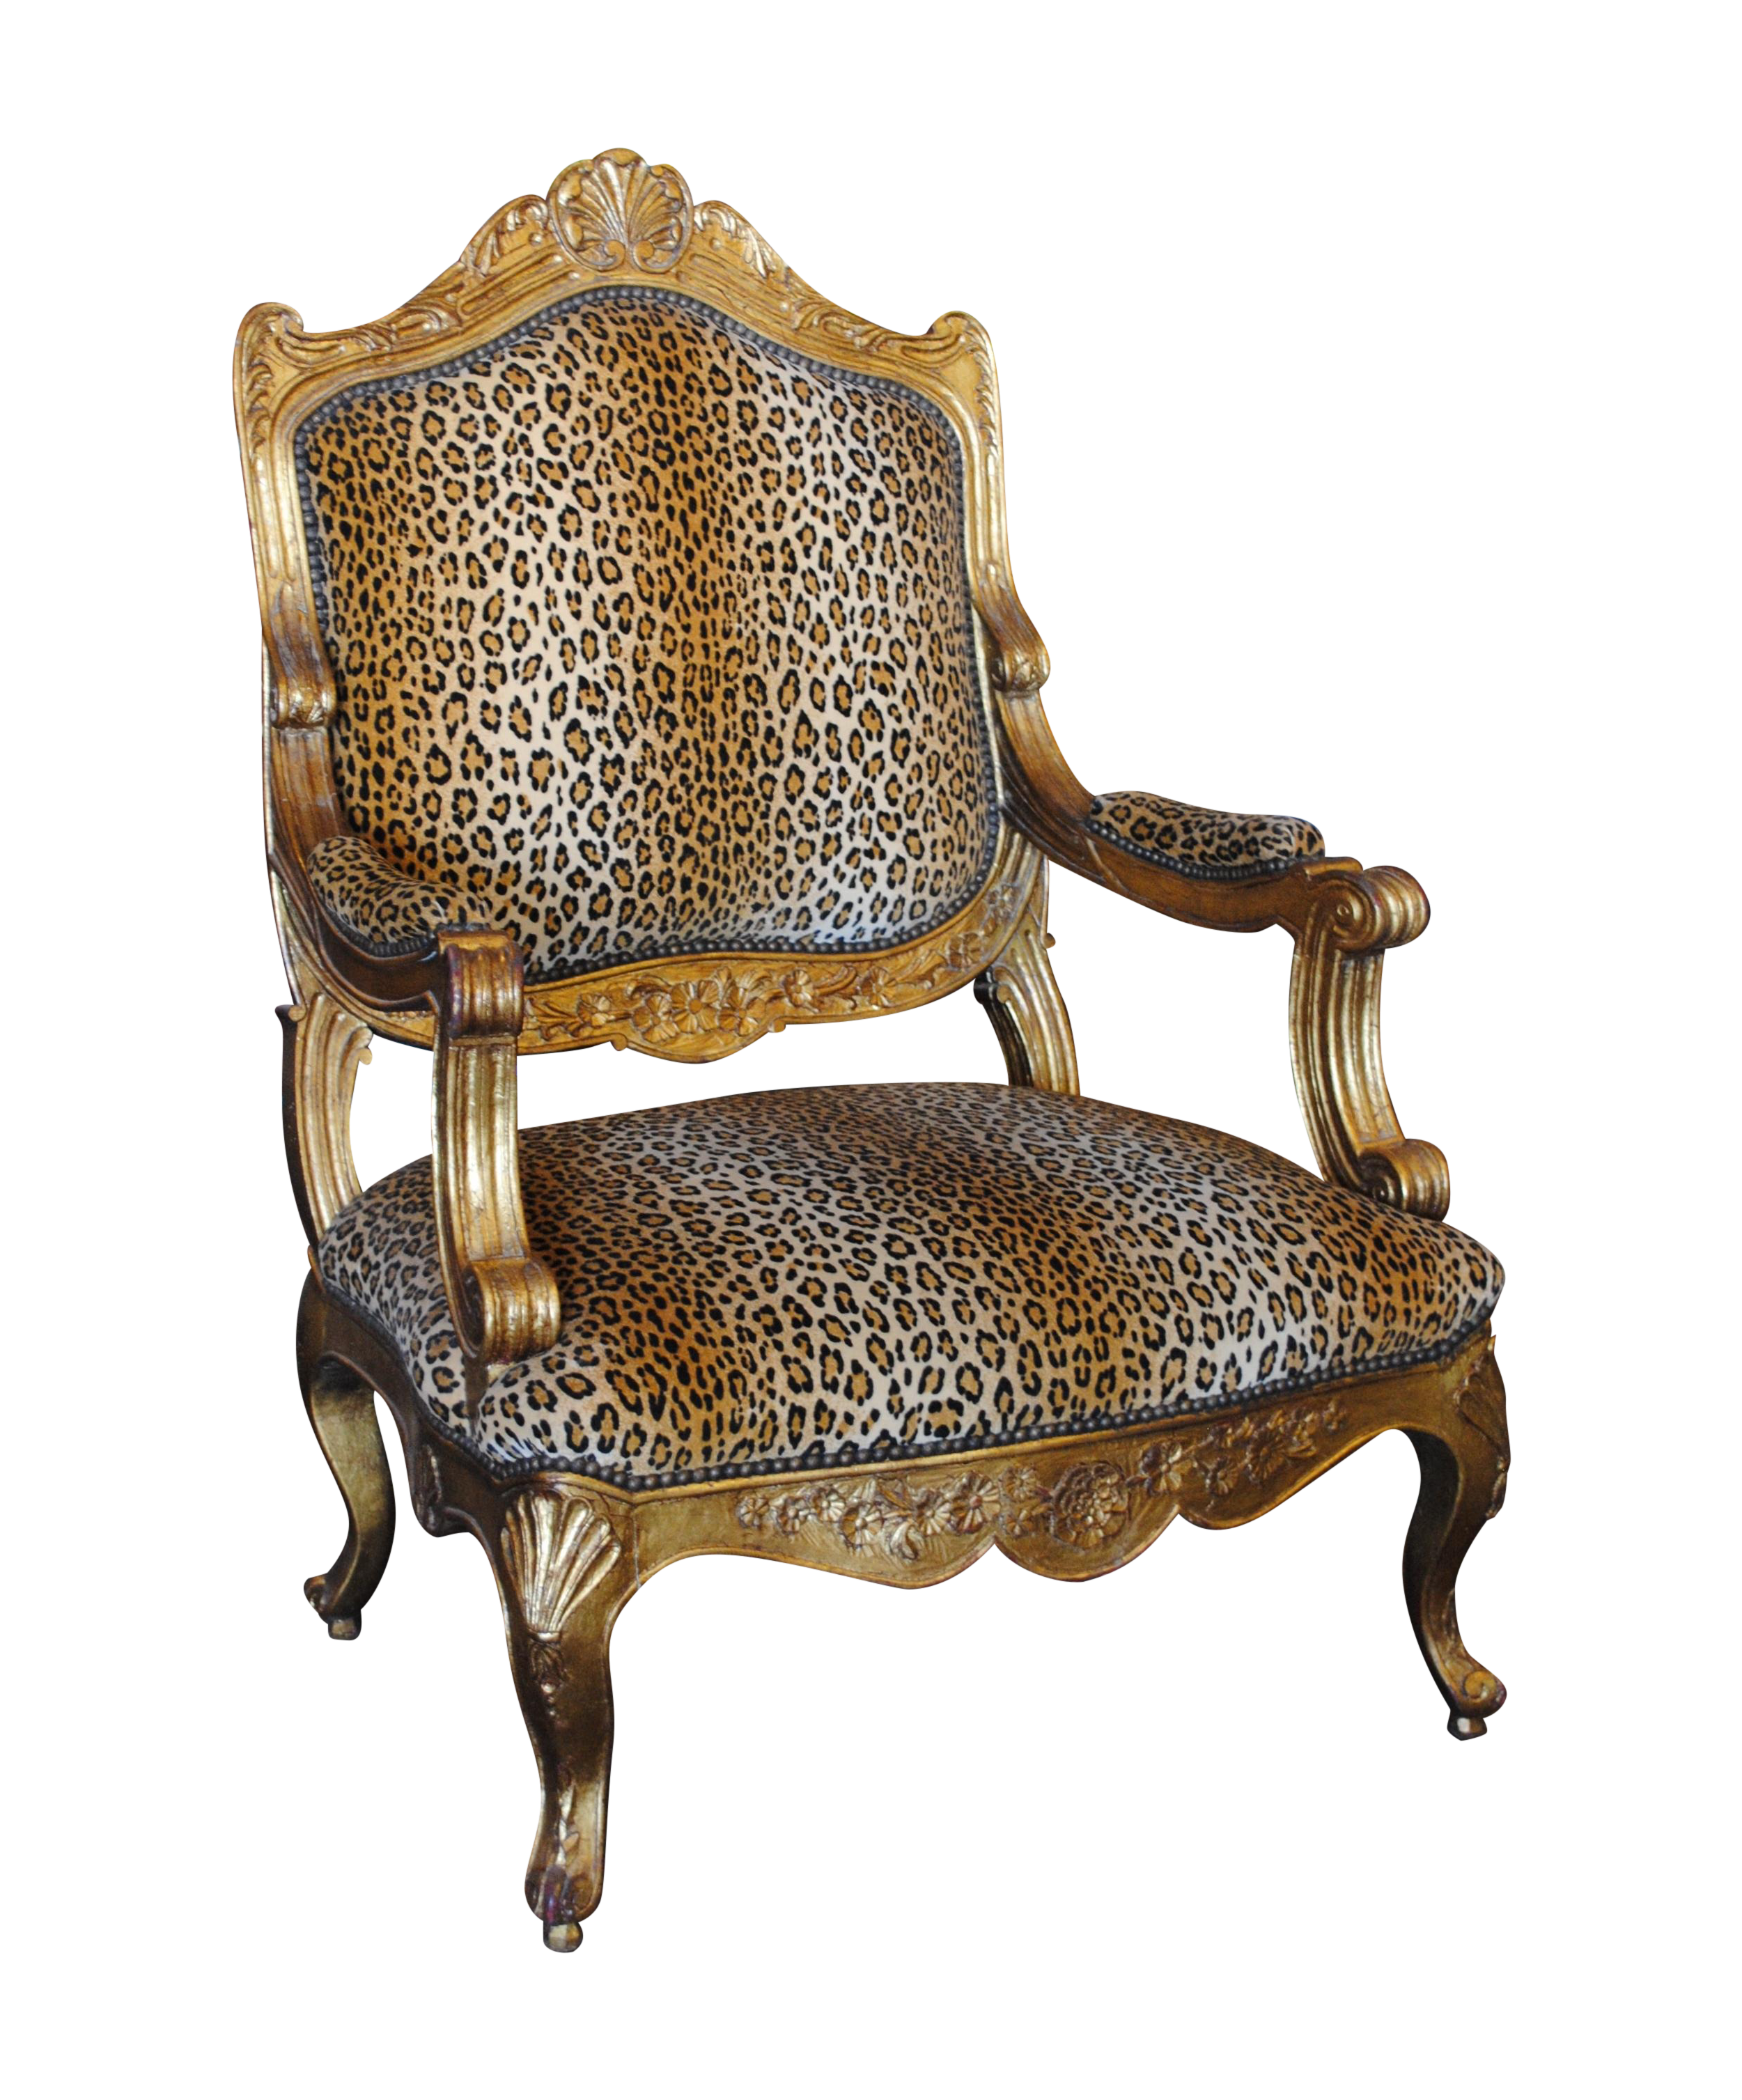 French Louis Xv Style Giltwood Amp Leopard Armchair Chairish